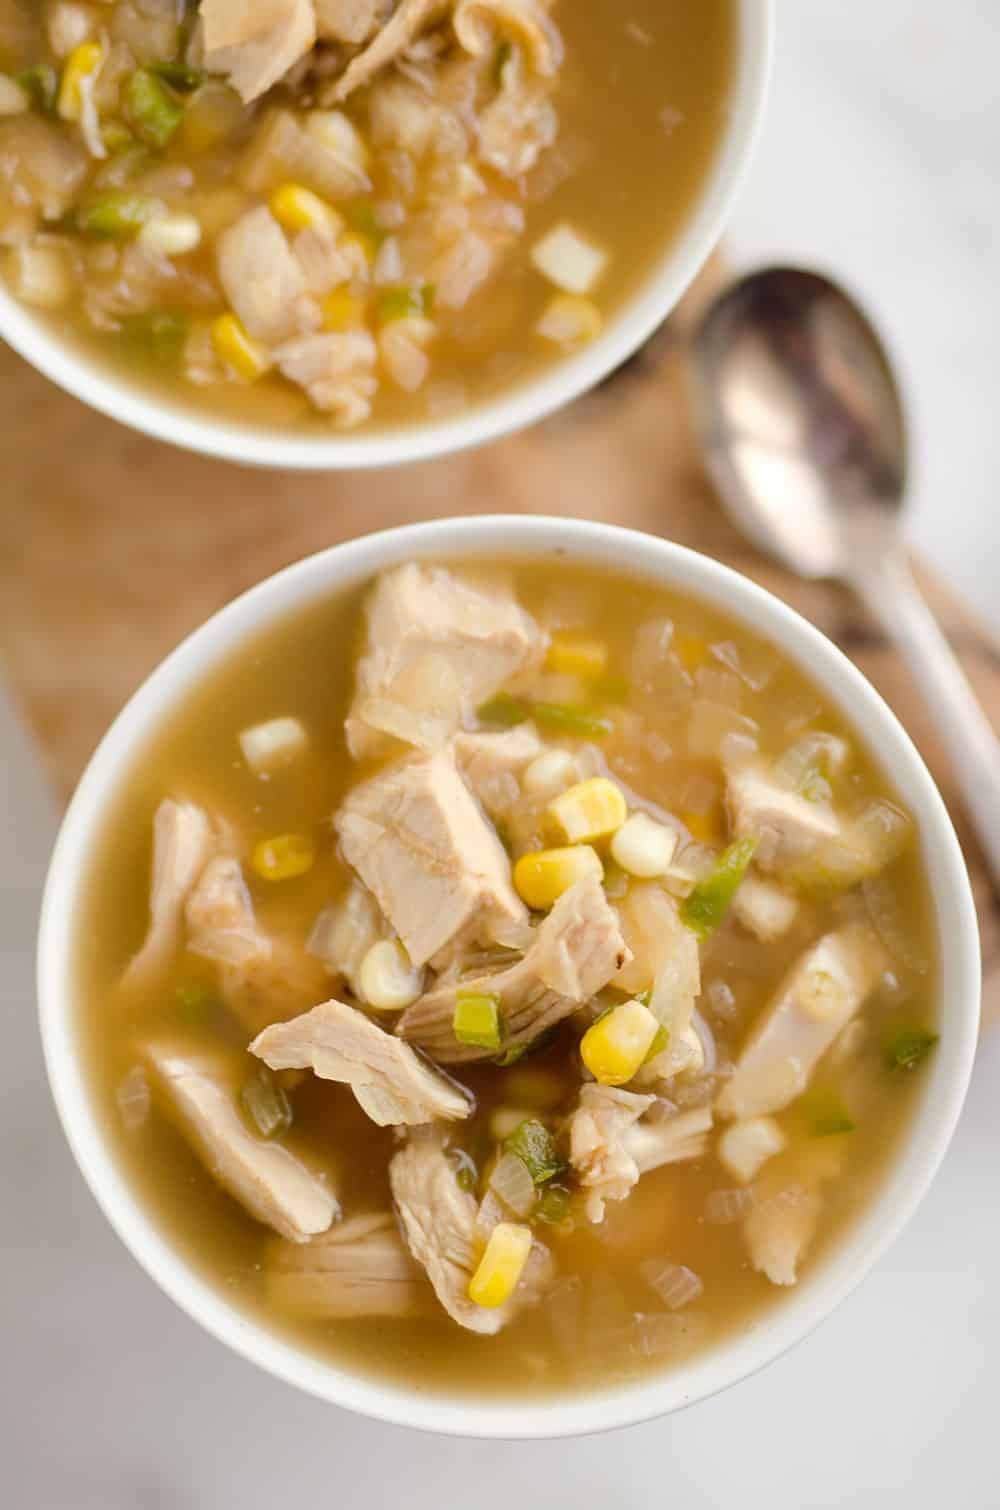 Spicy Turkey & Sweet Corn Soup is the perfect way to use up your holiday leftovers for a light and delicious meal!